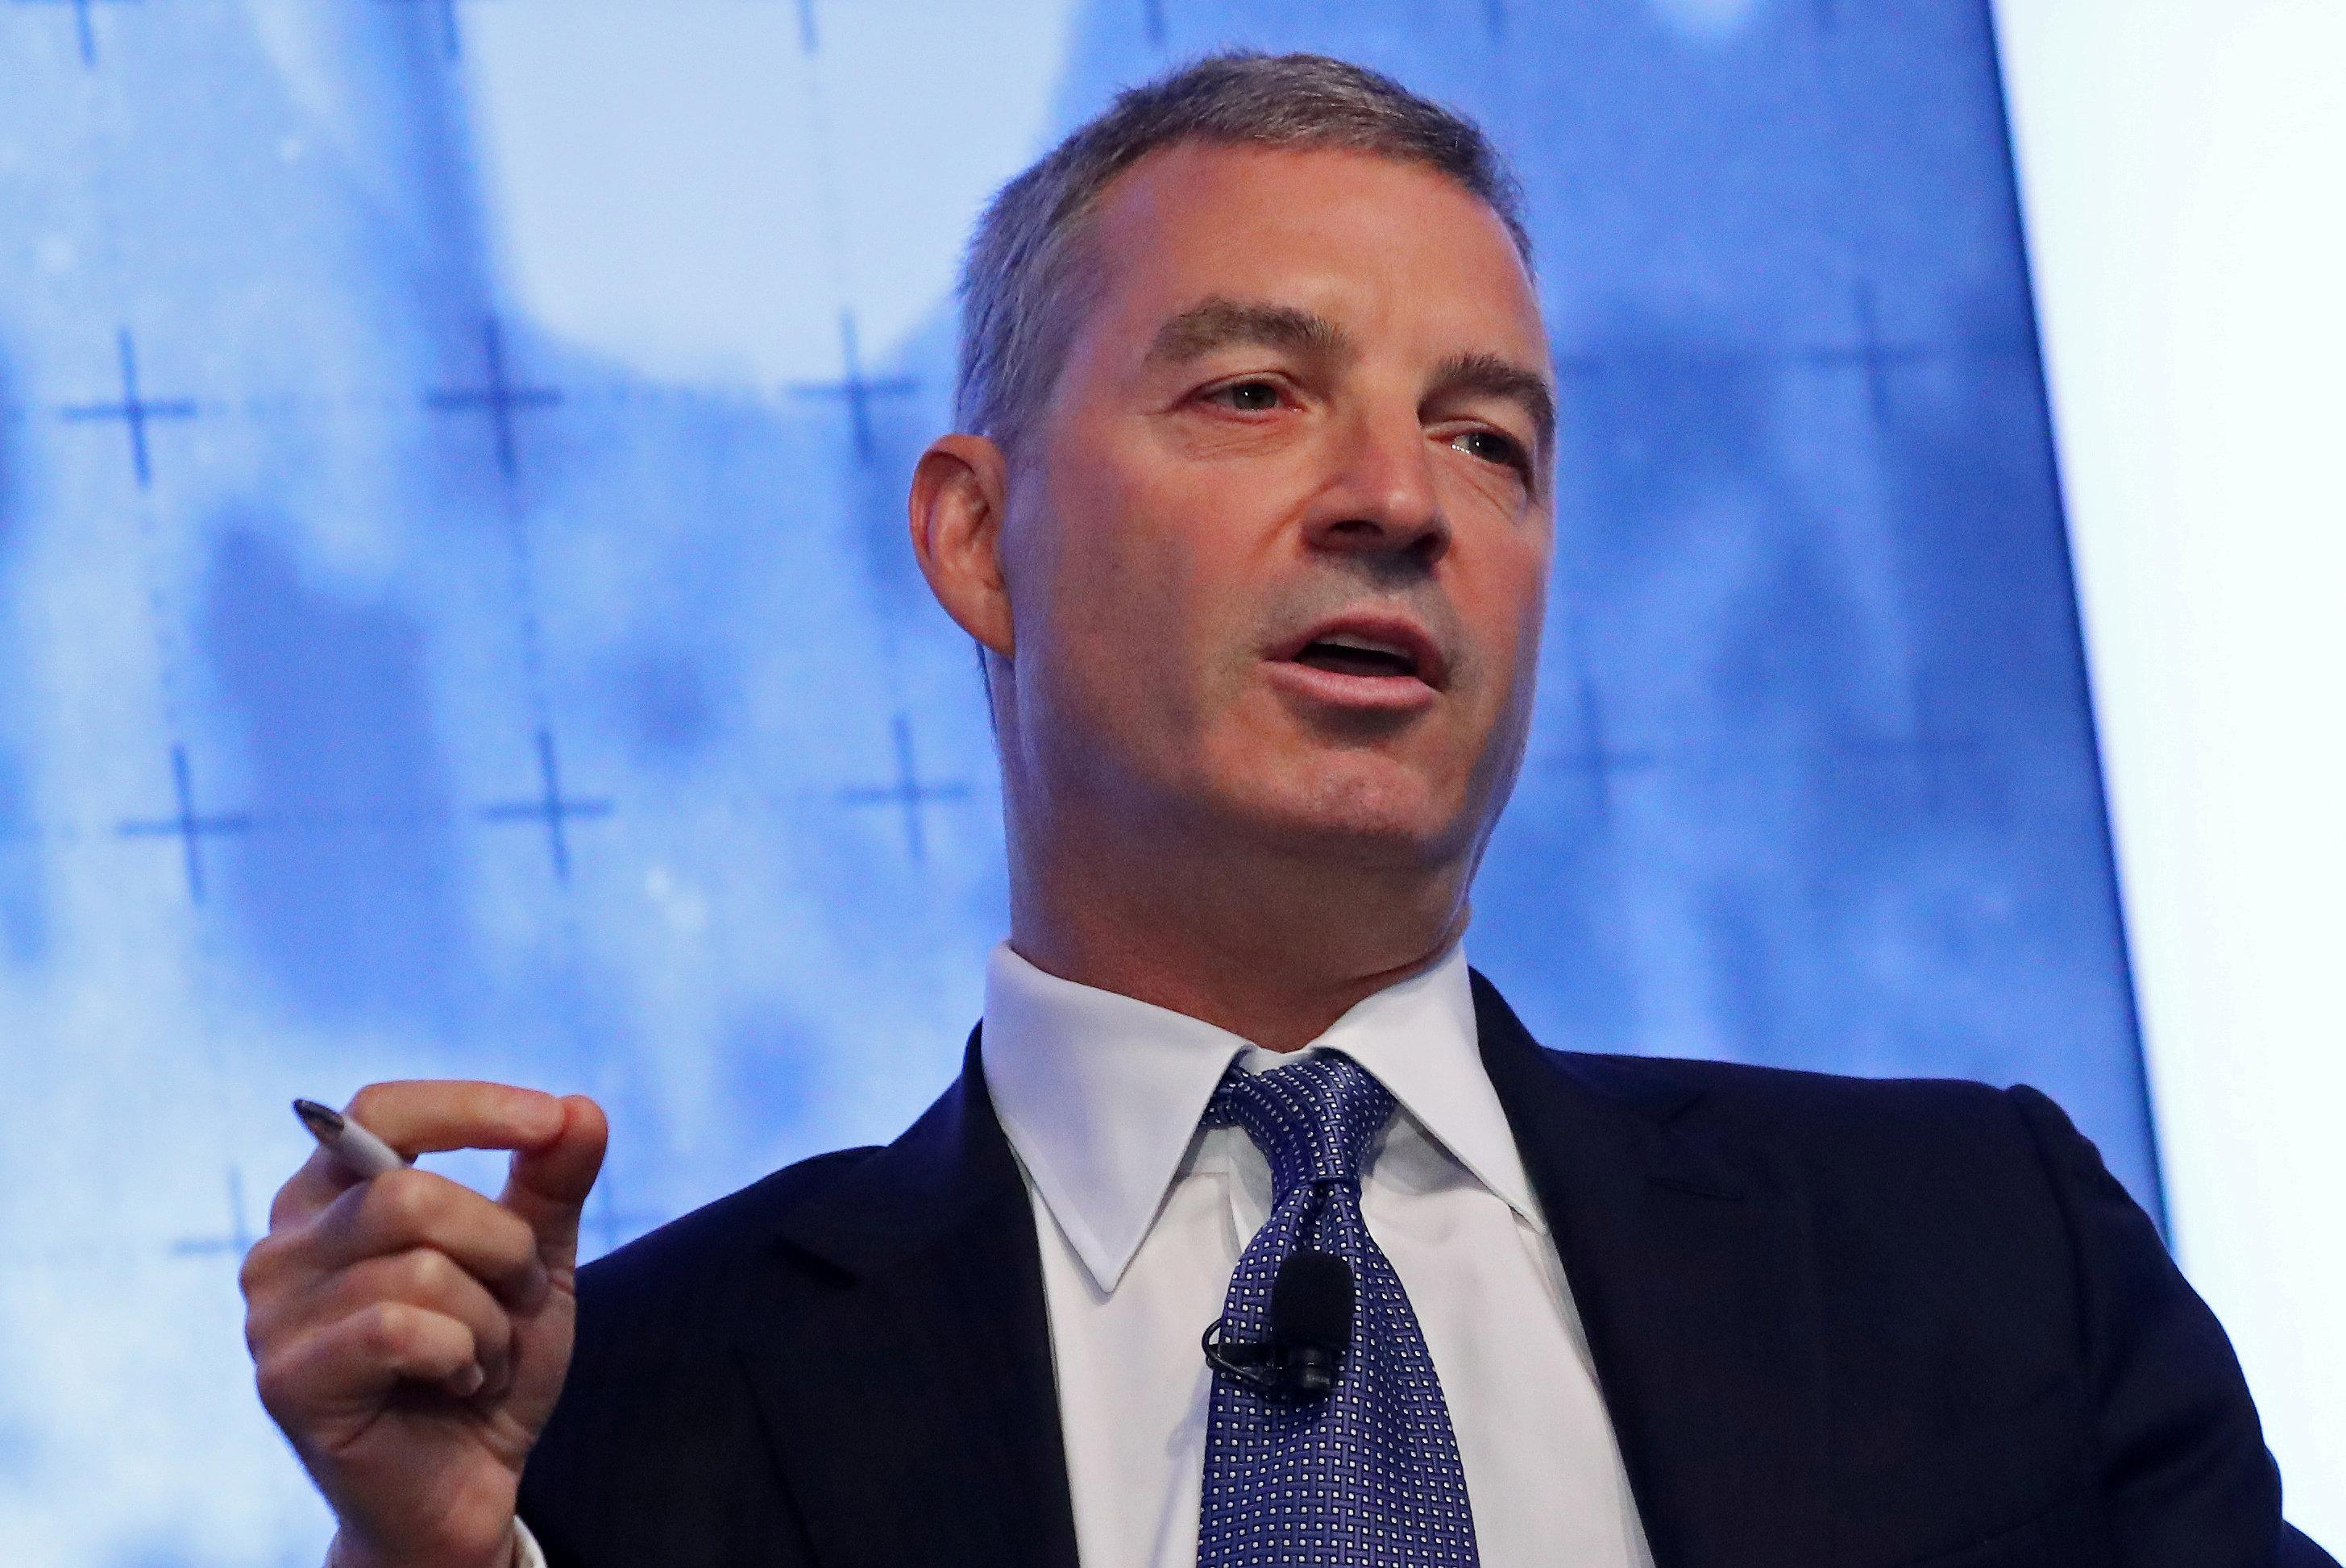 Hedge fund manager Daniel Loeb speaks during a Reuters Newsmaker event in Manhattan, New York, U.S., September 21, 2016. Andrew Kelly